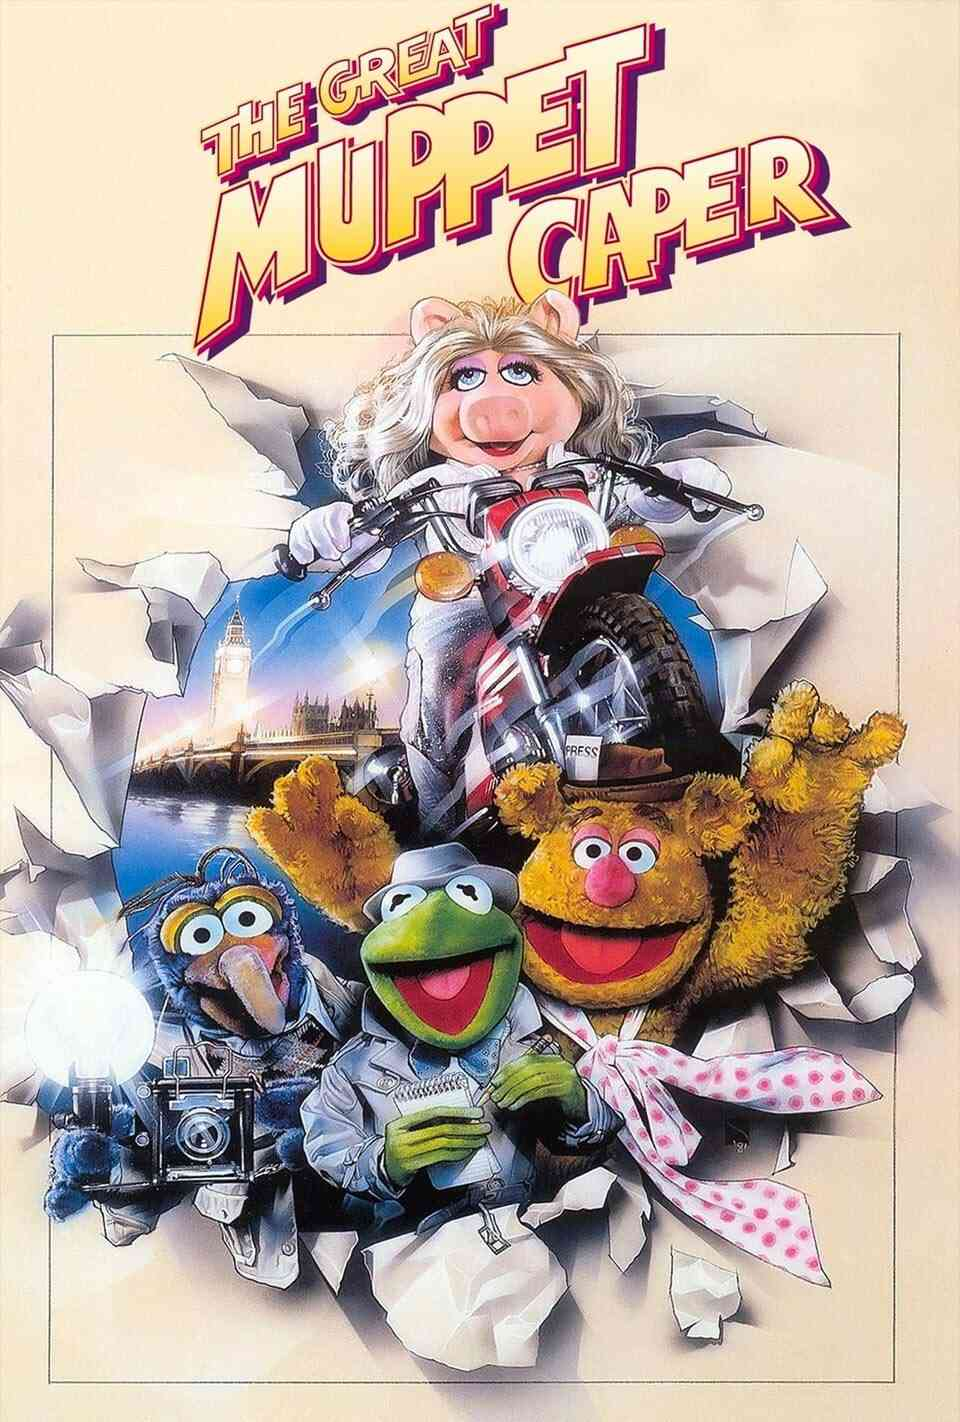 The Great Muppet Caper Poster